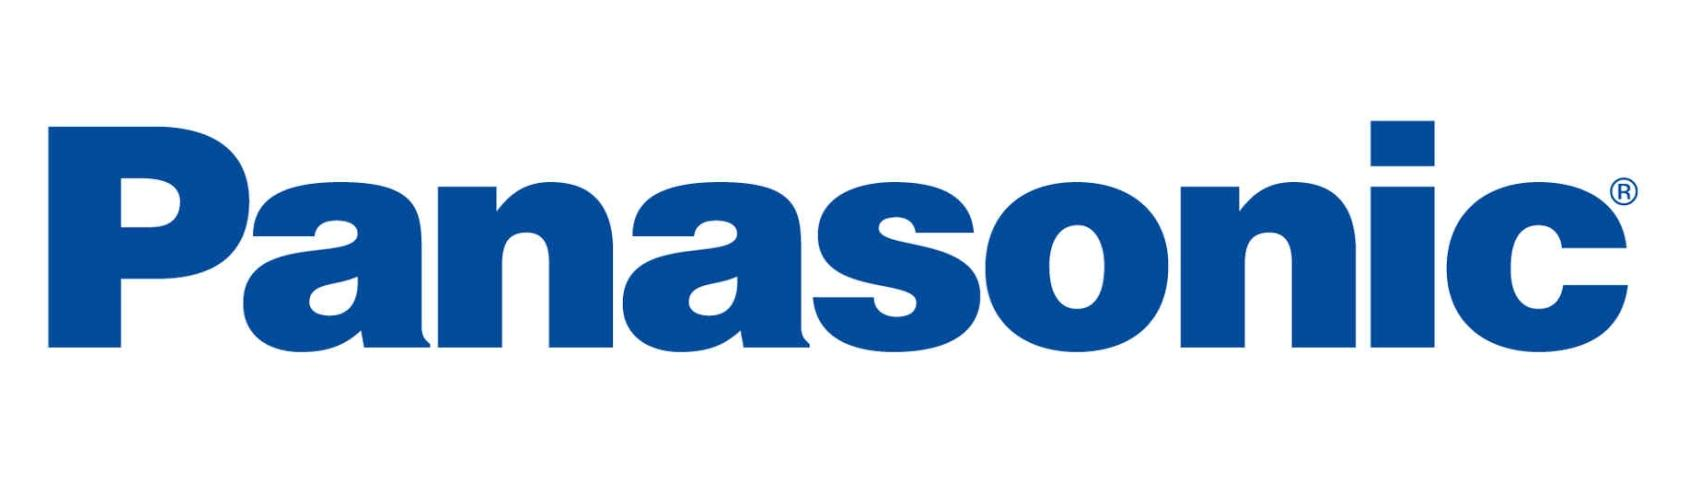 Up to 60% off Selected Panasonic Electronics for Health & Personal Care